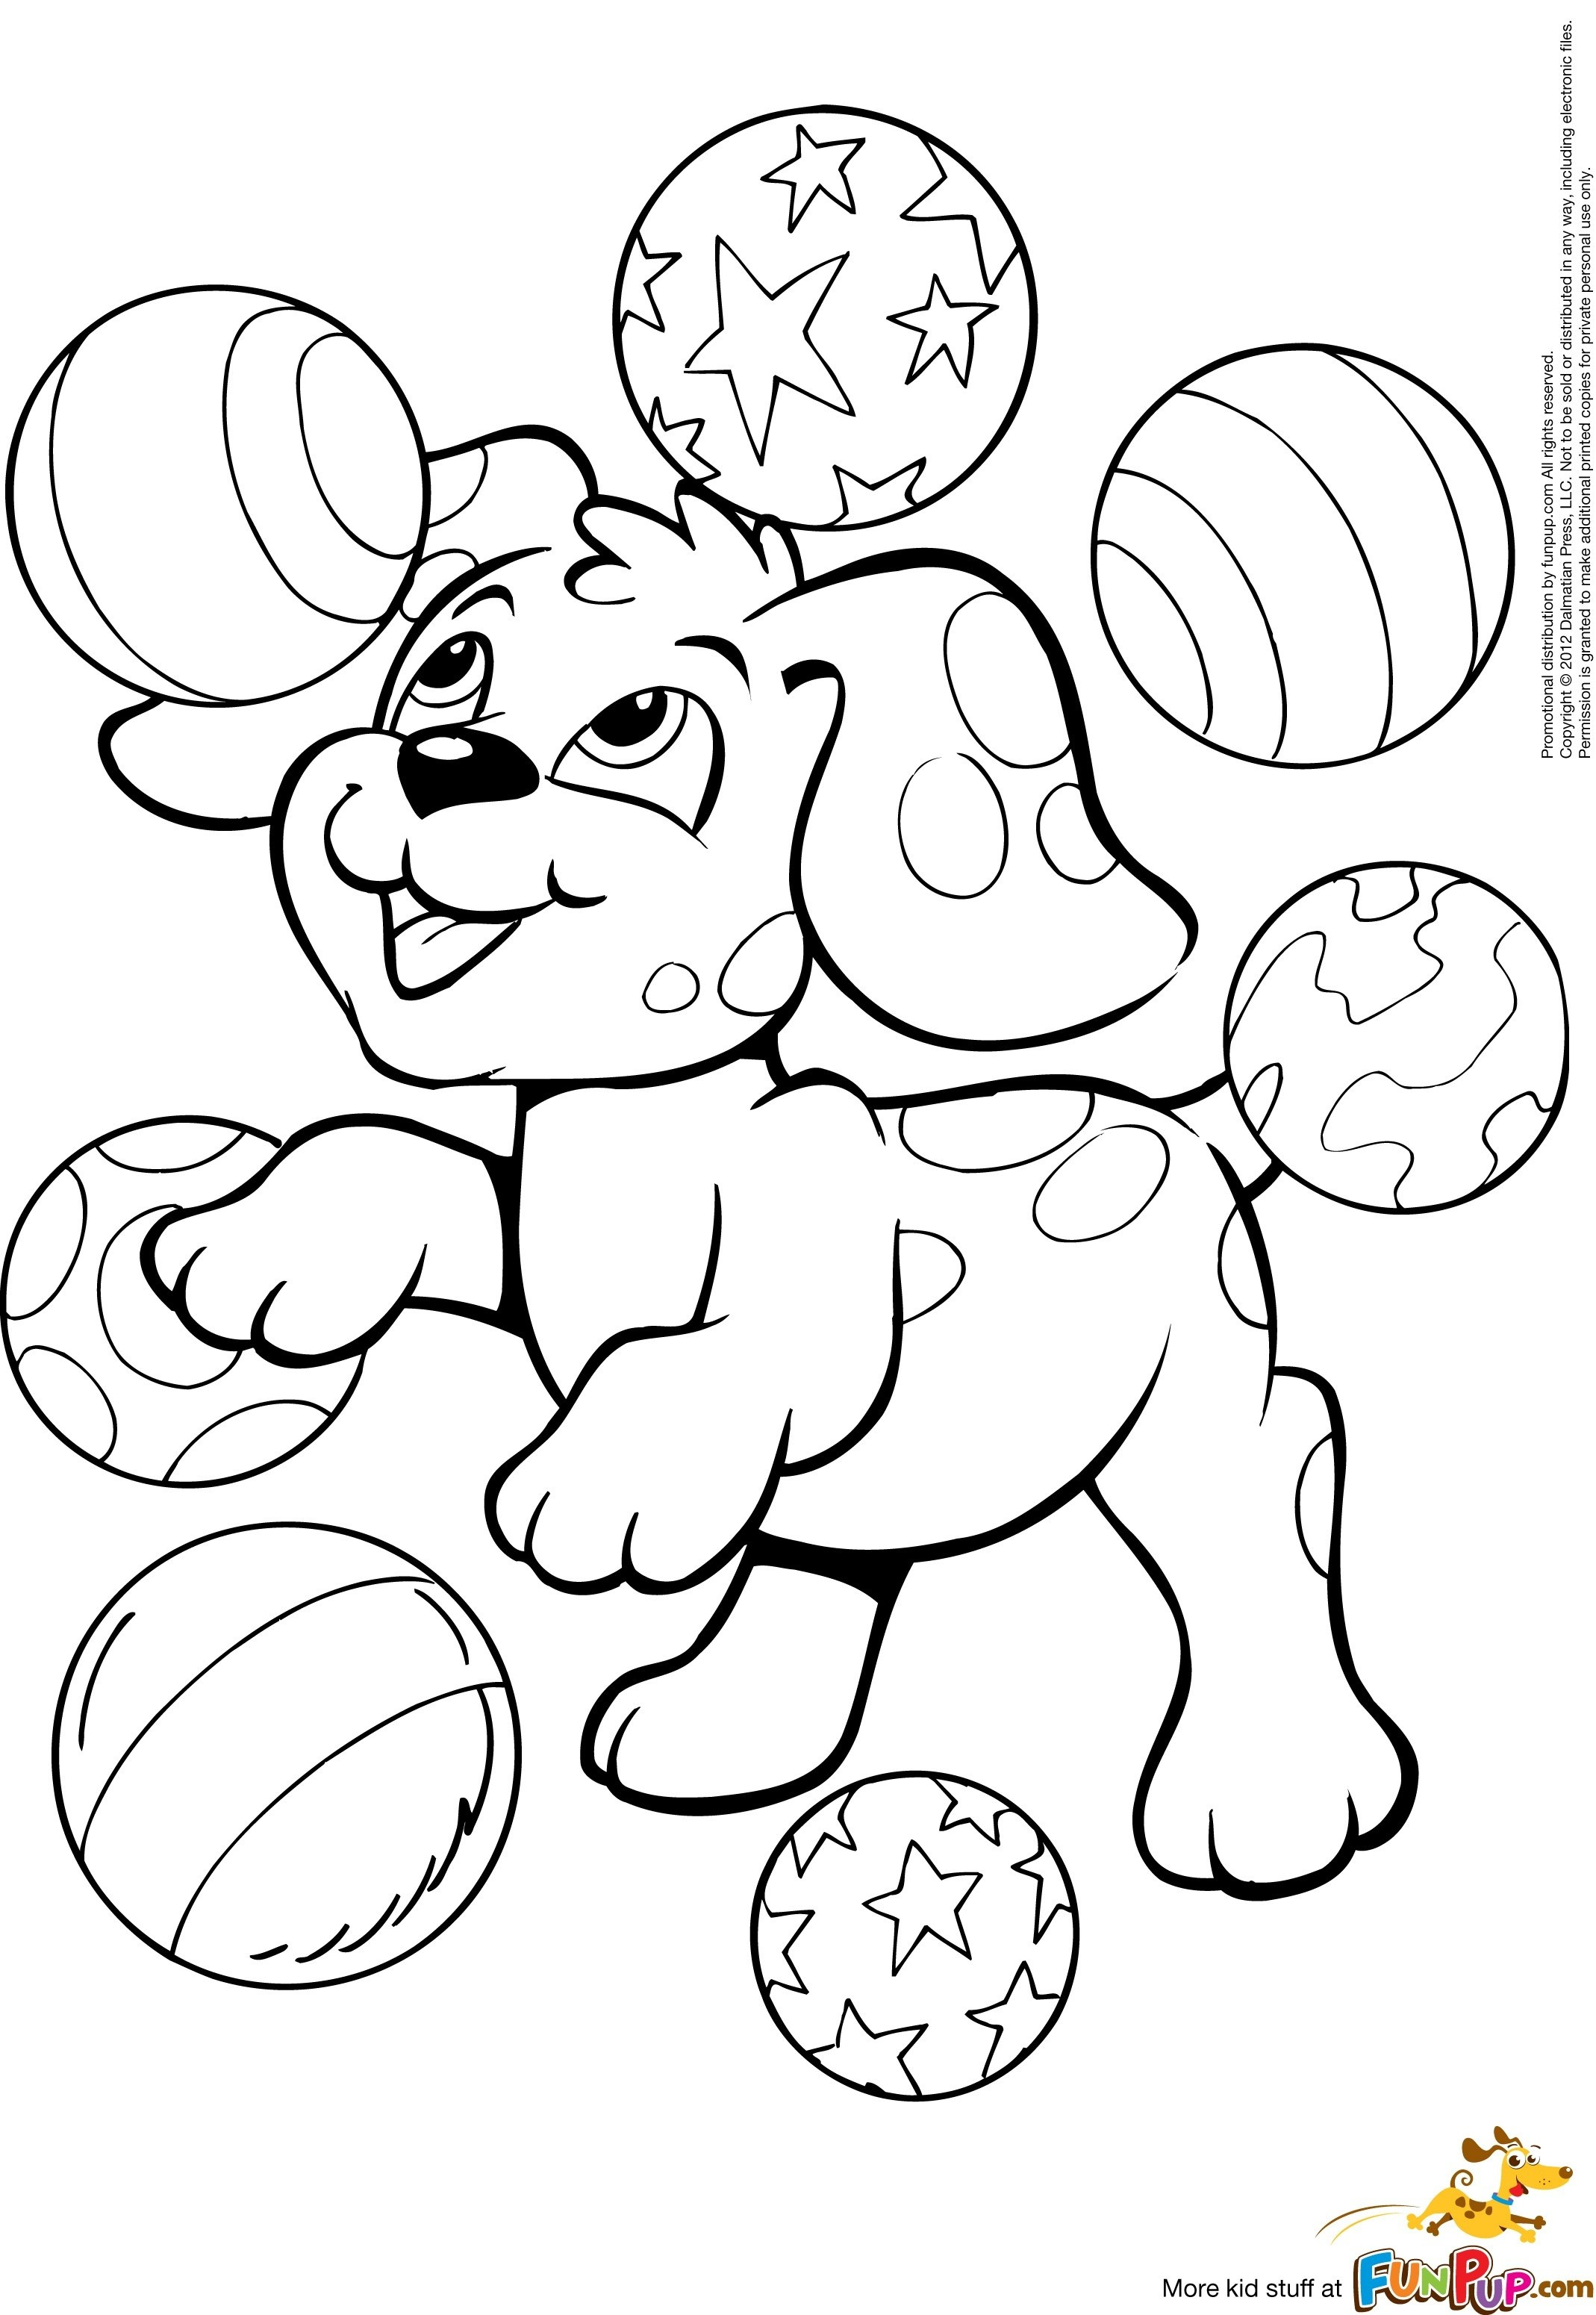 Paw Patrol Bus Ausmalbilder : Puppy Paw Drawing At Getdrawings Com Free For Personal Use Puppy